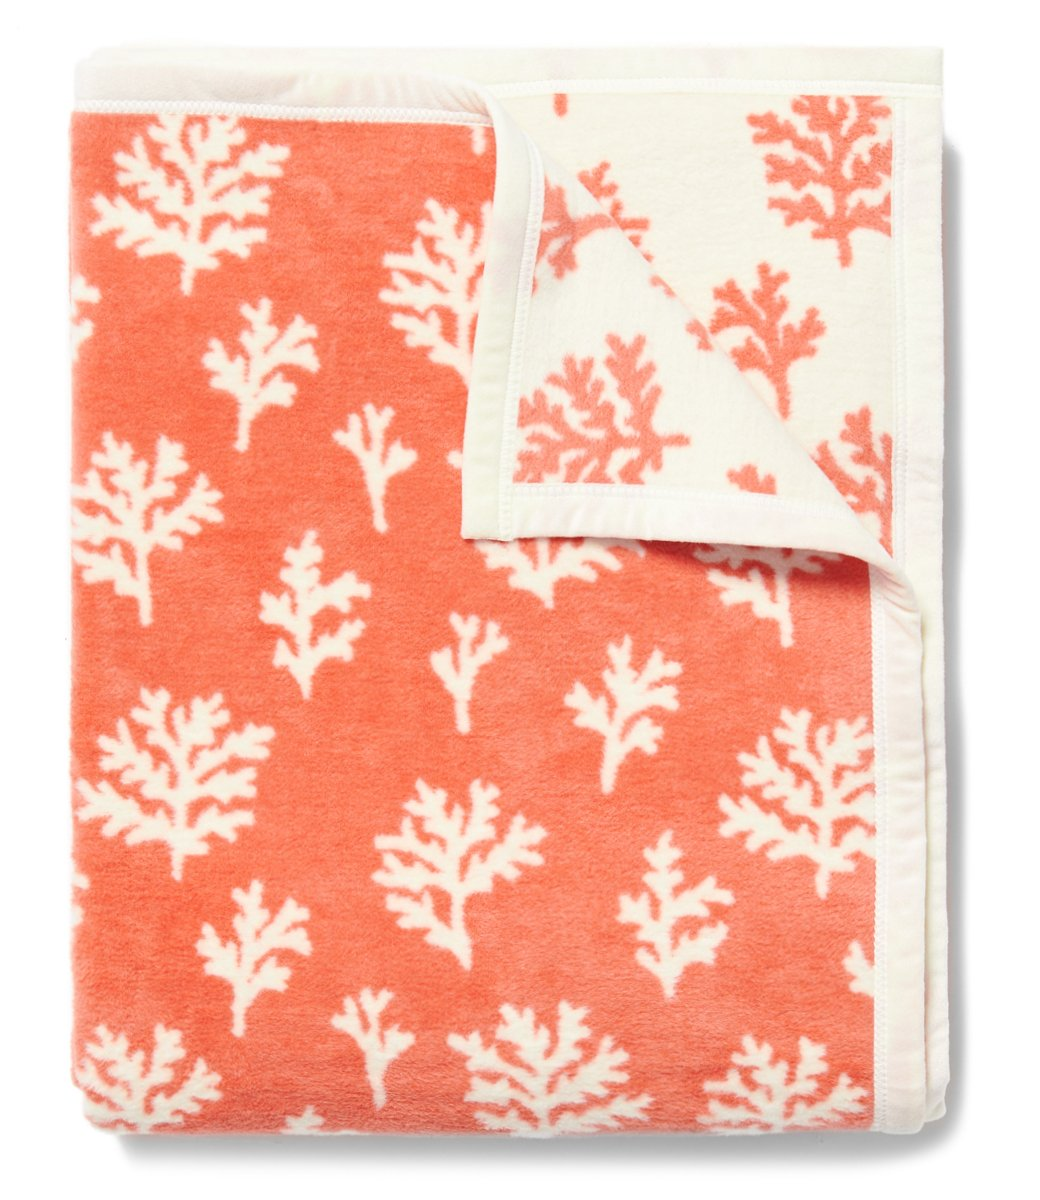 Summer Party Hostess Gifts: Chappywrap Coral Reef Blanket